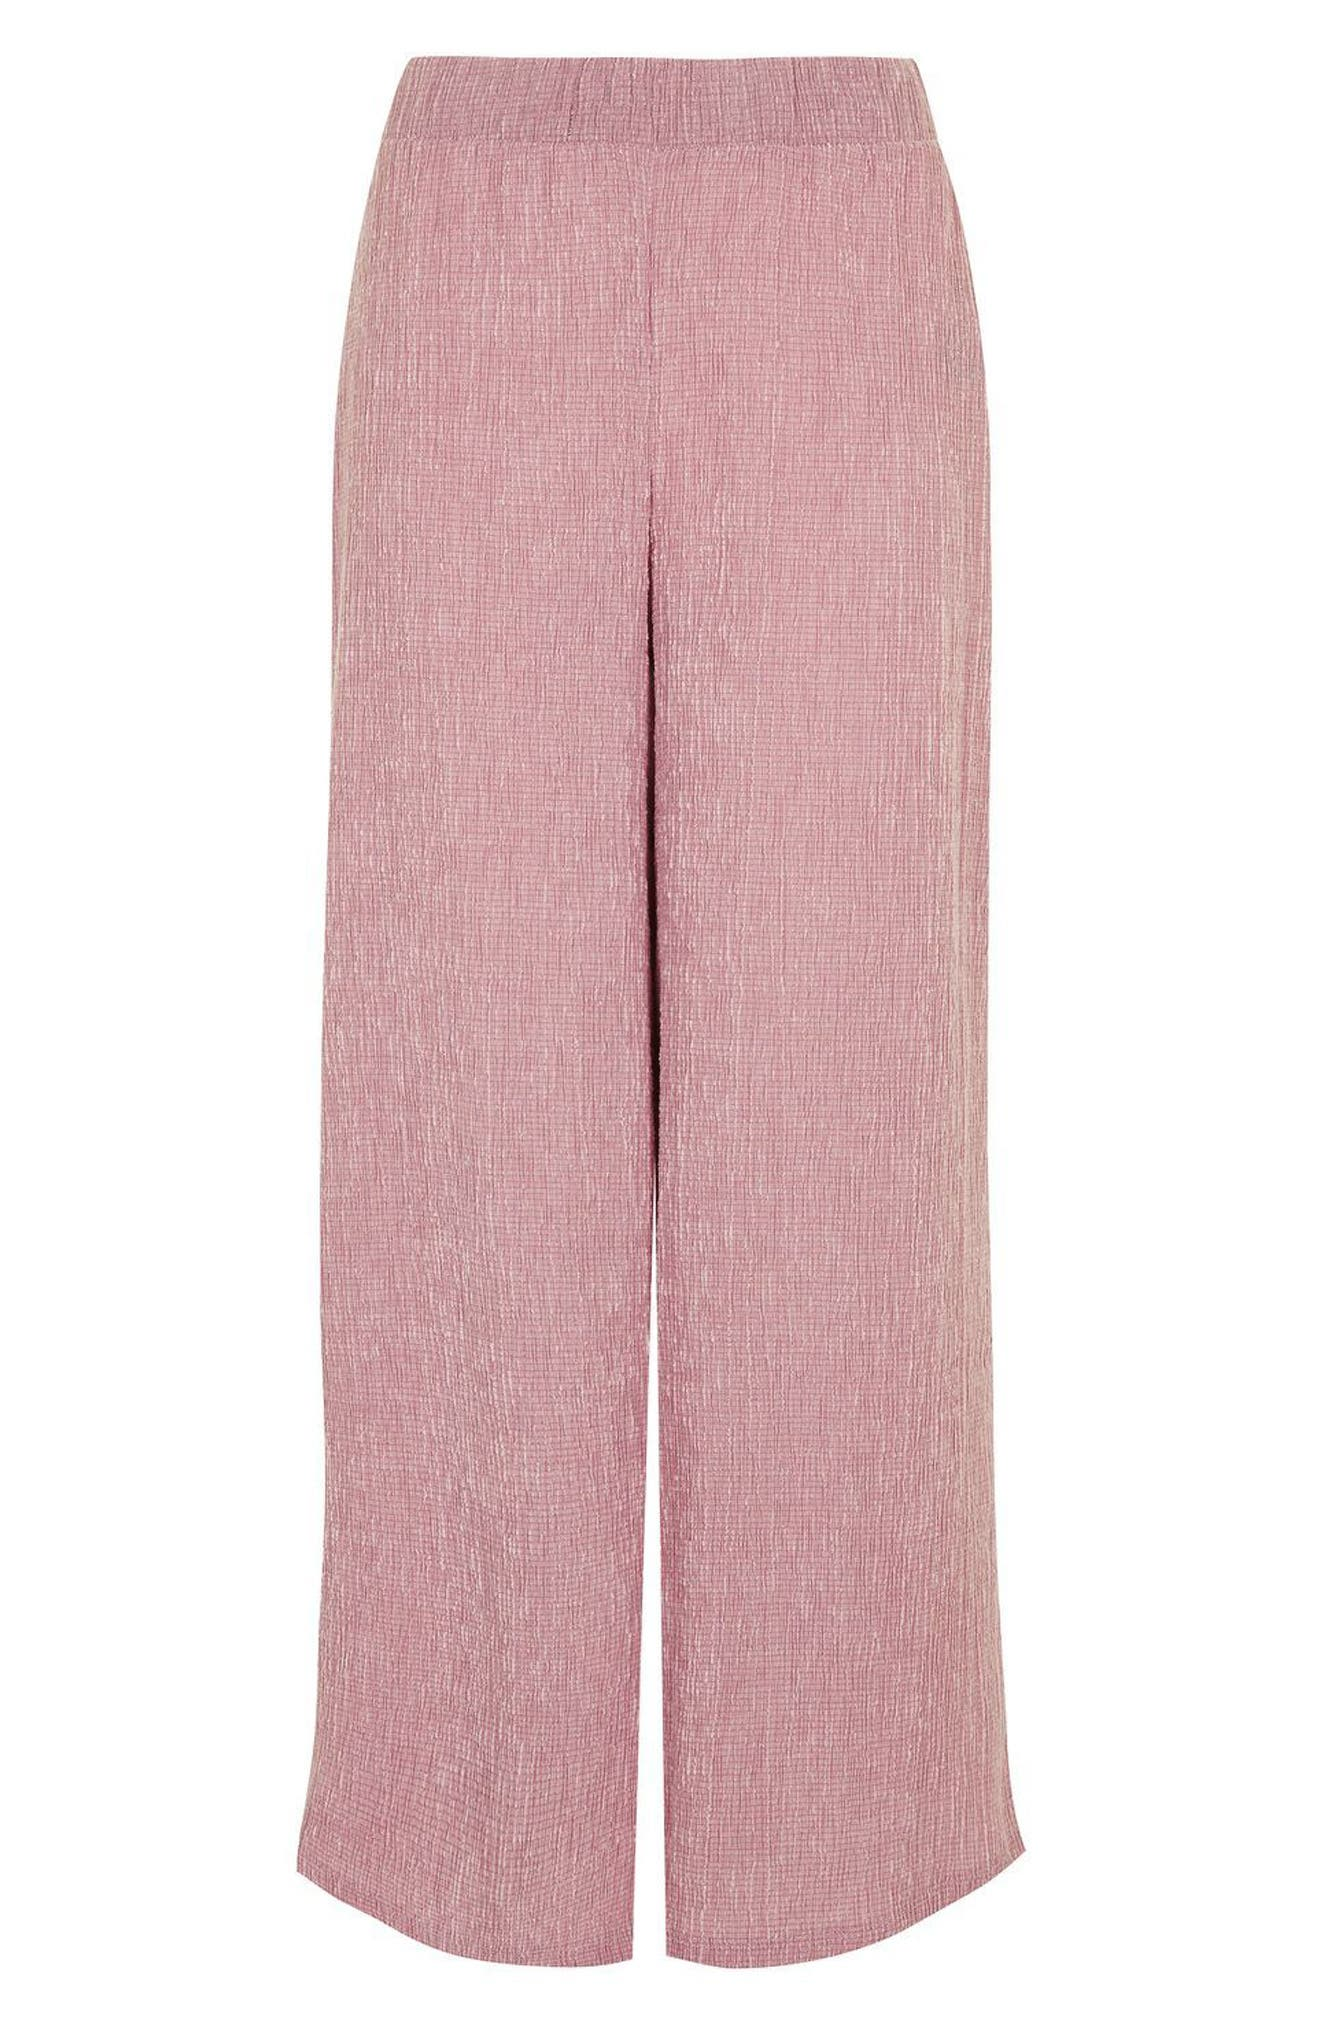 Alternate Image 4  - Topshop Textured Trousers